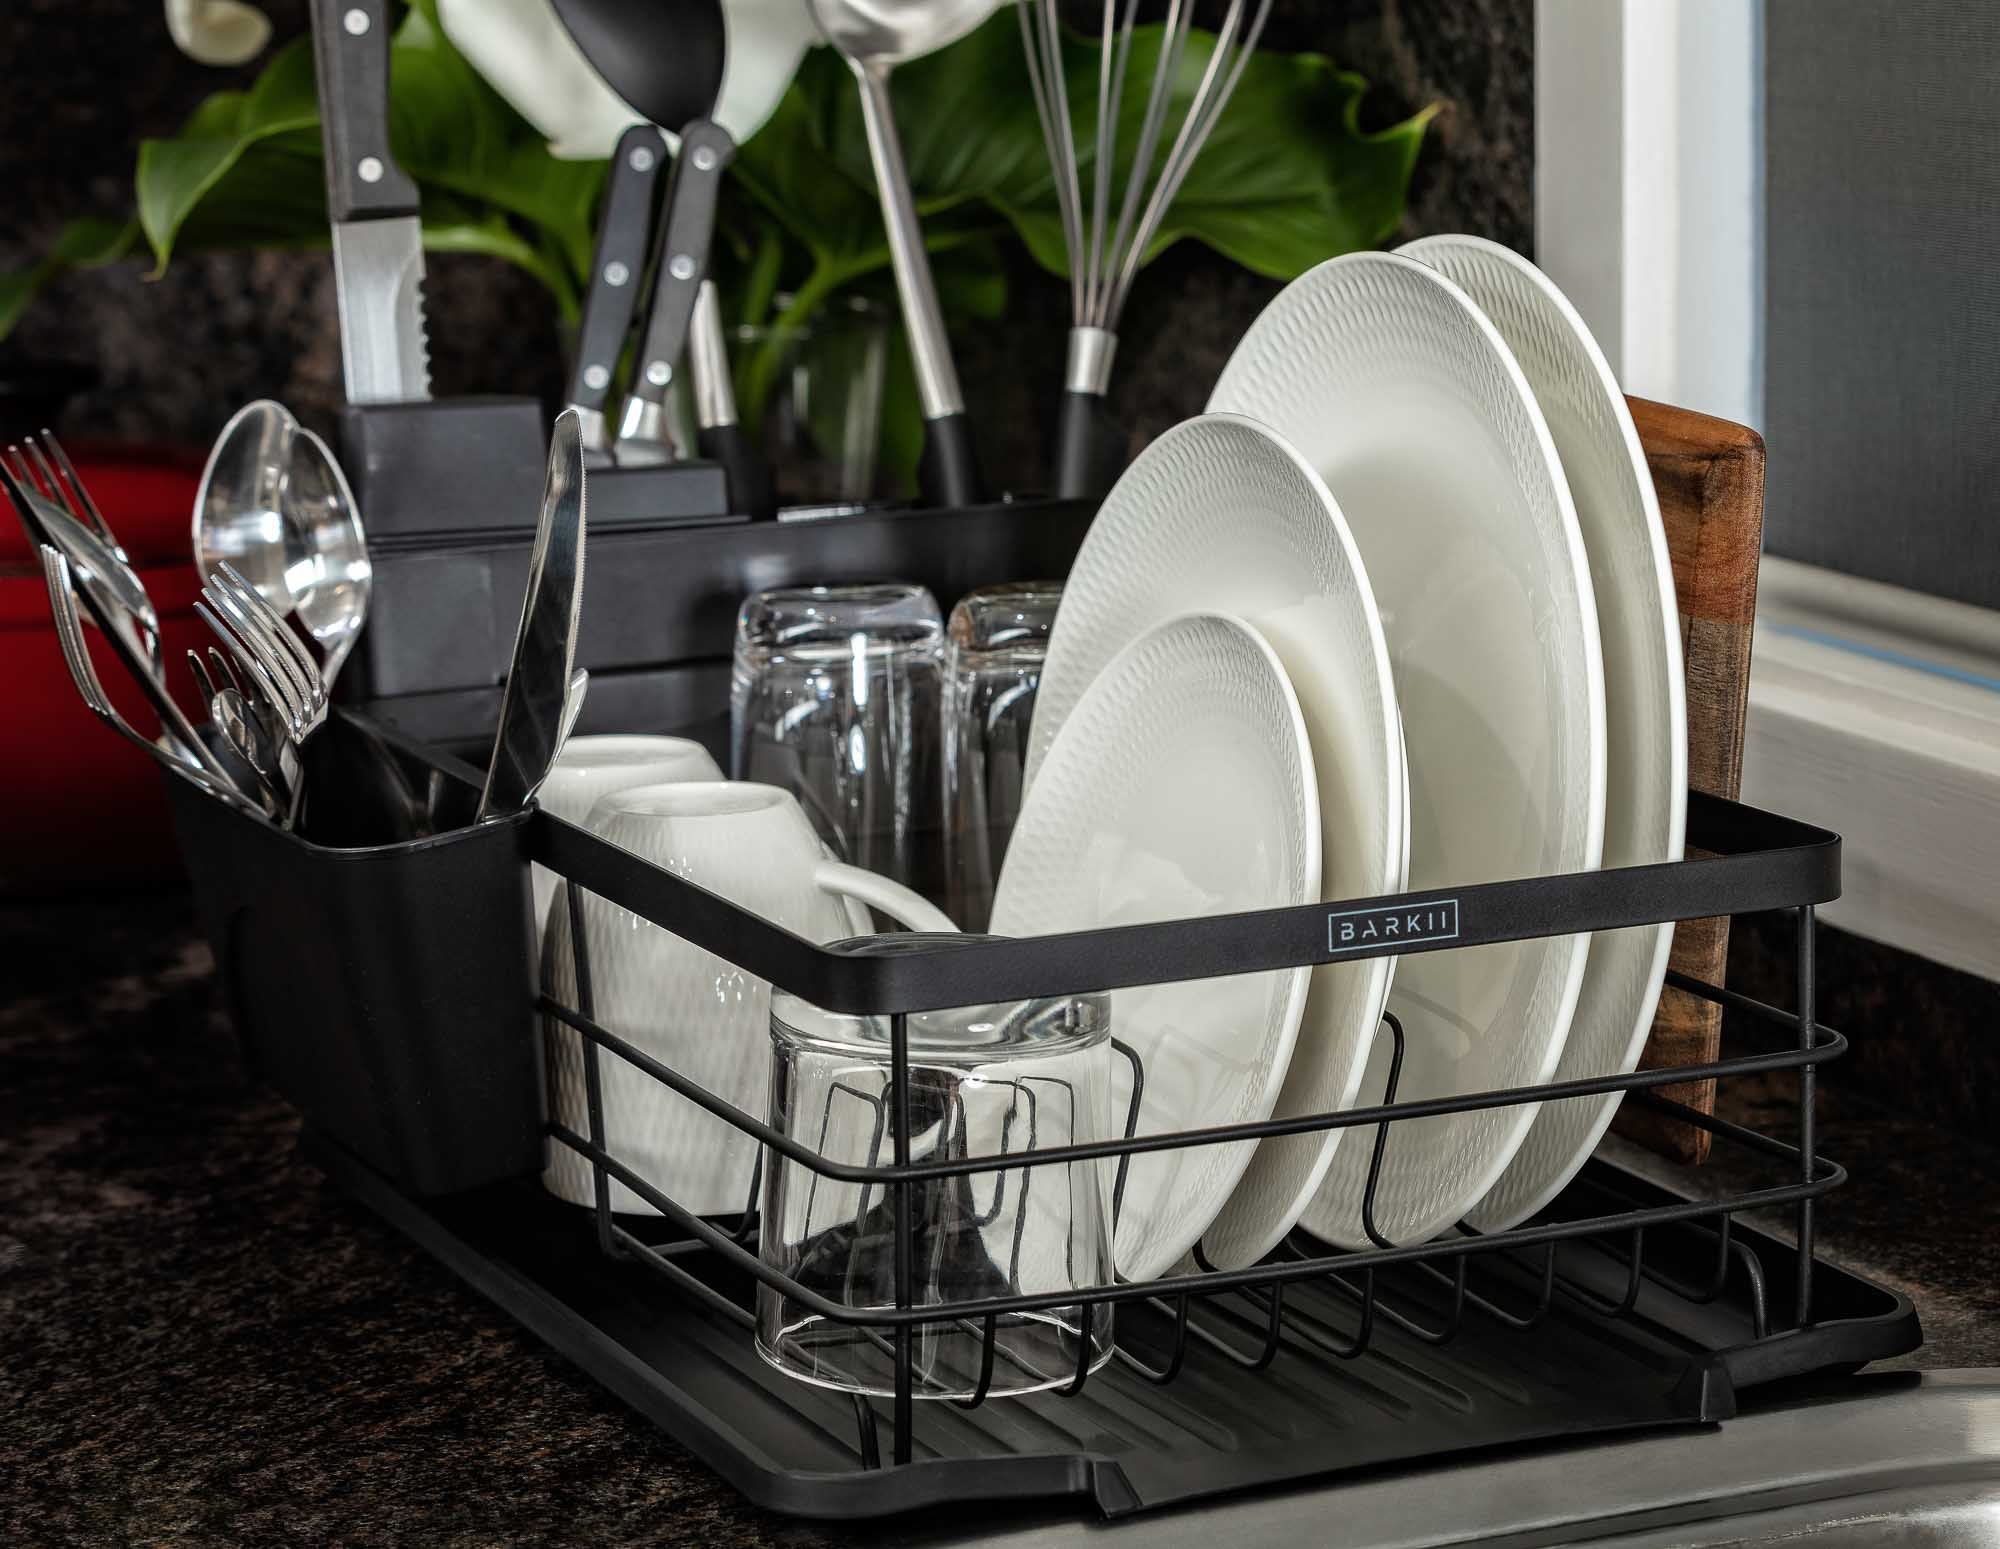 Dish Rack Product in use dry plates - Product photo for Amazon